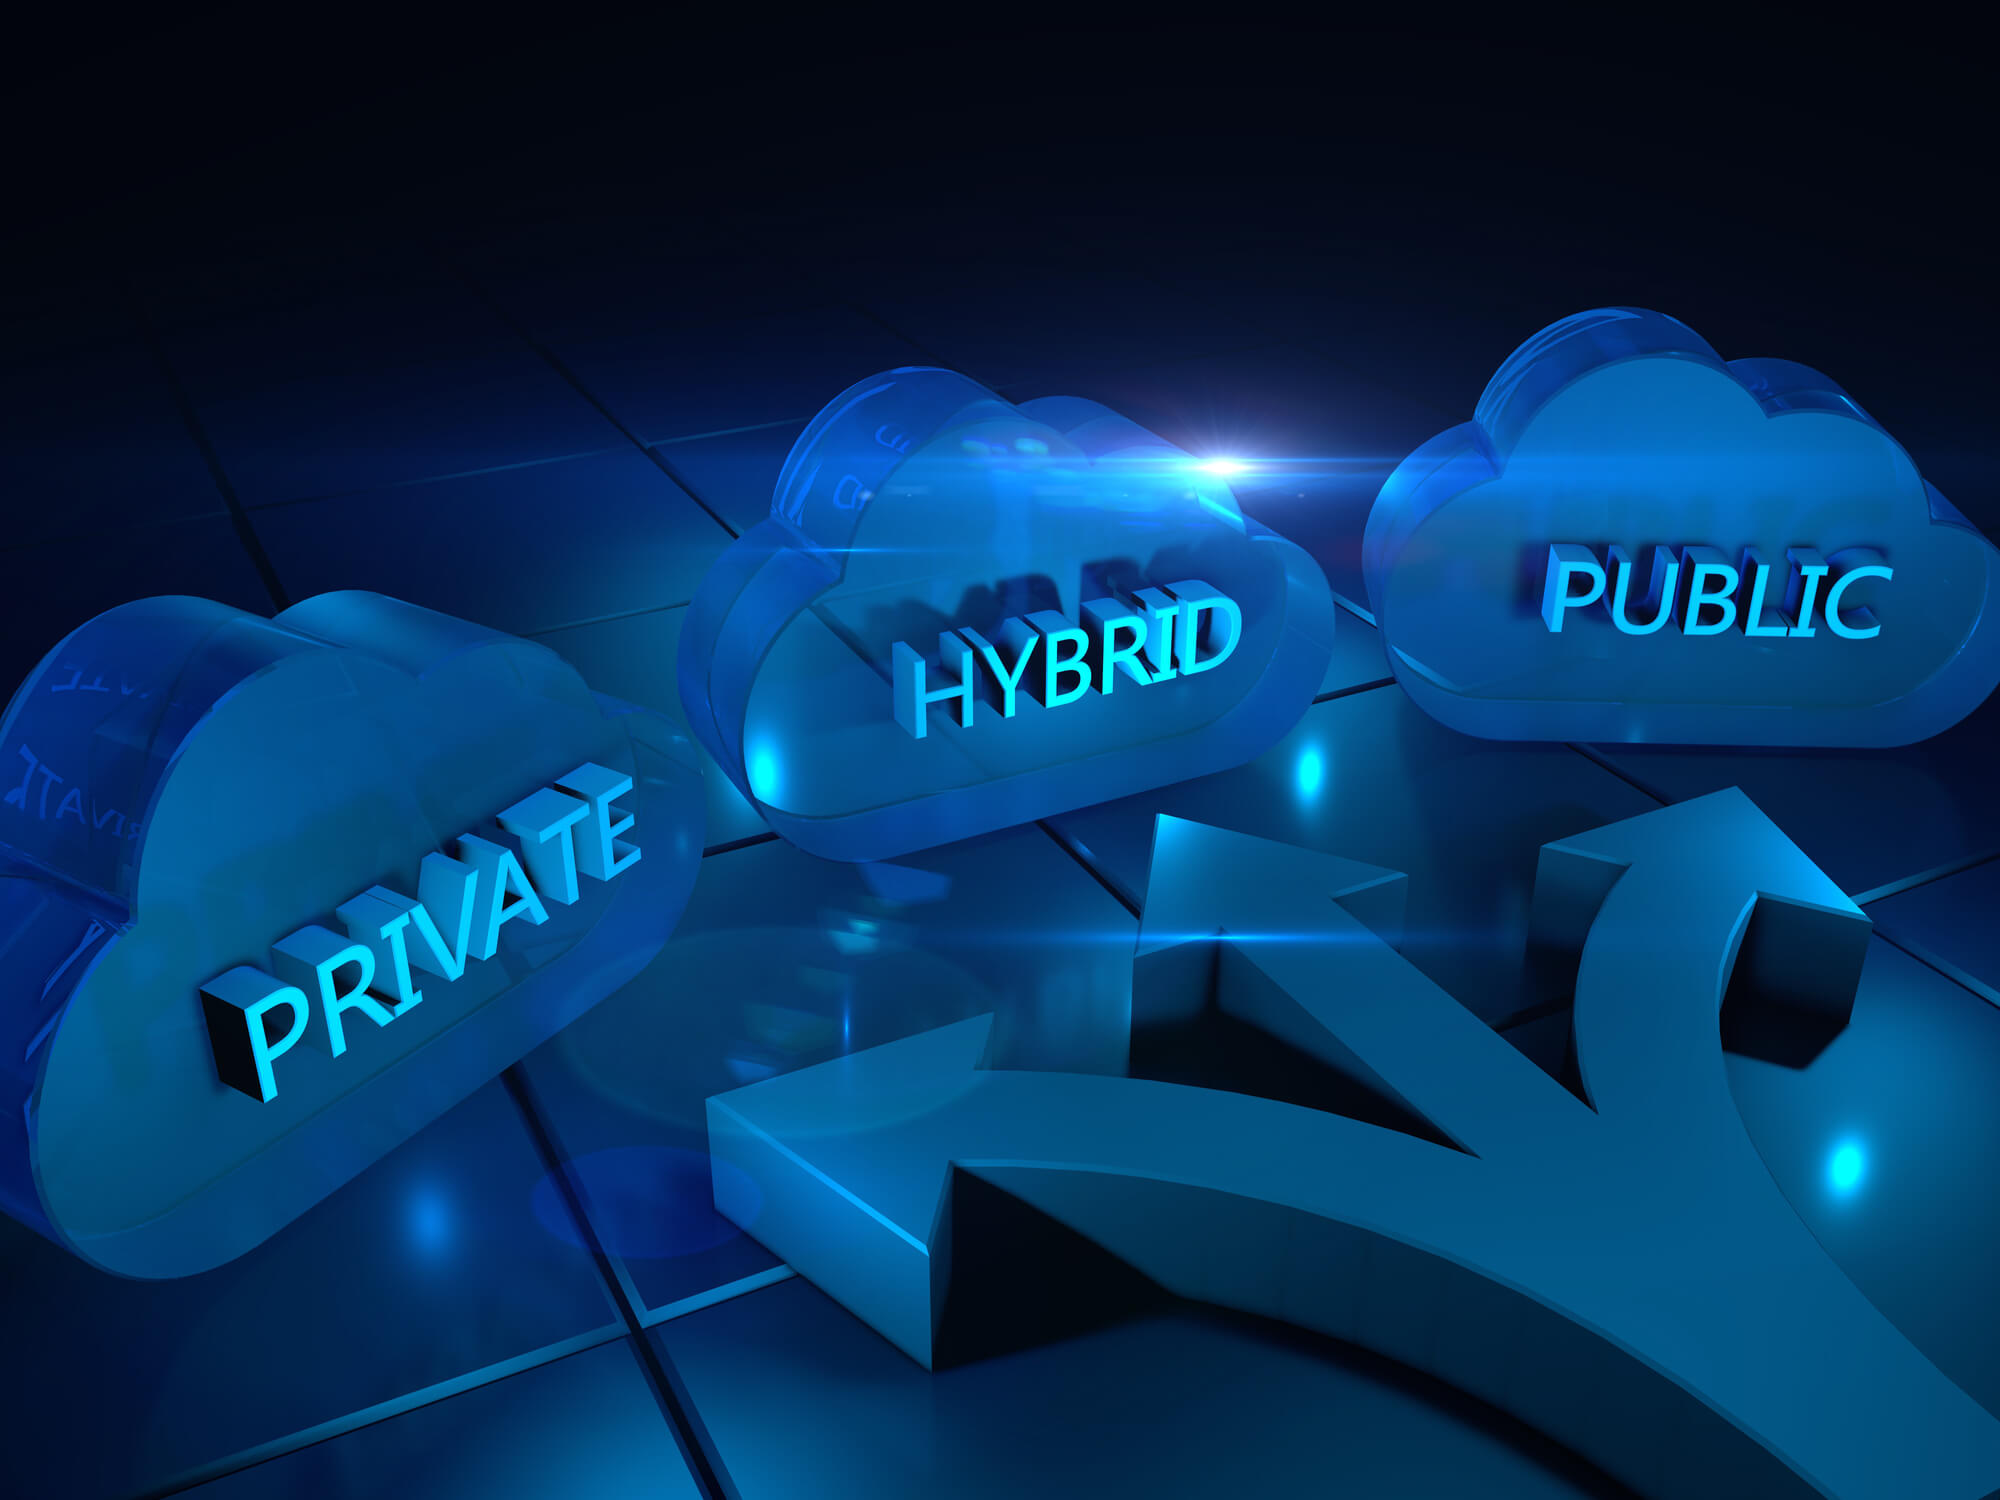 Hybrid cloud — A computing environment that integrates legacy IT and cloud-based applications